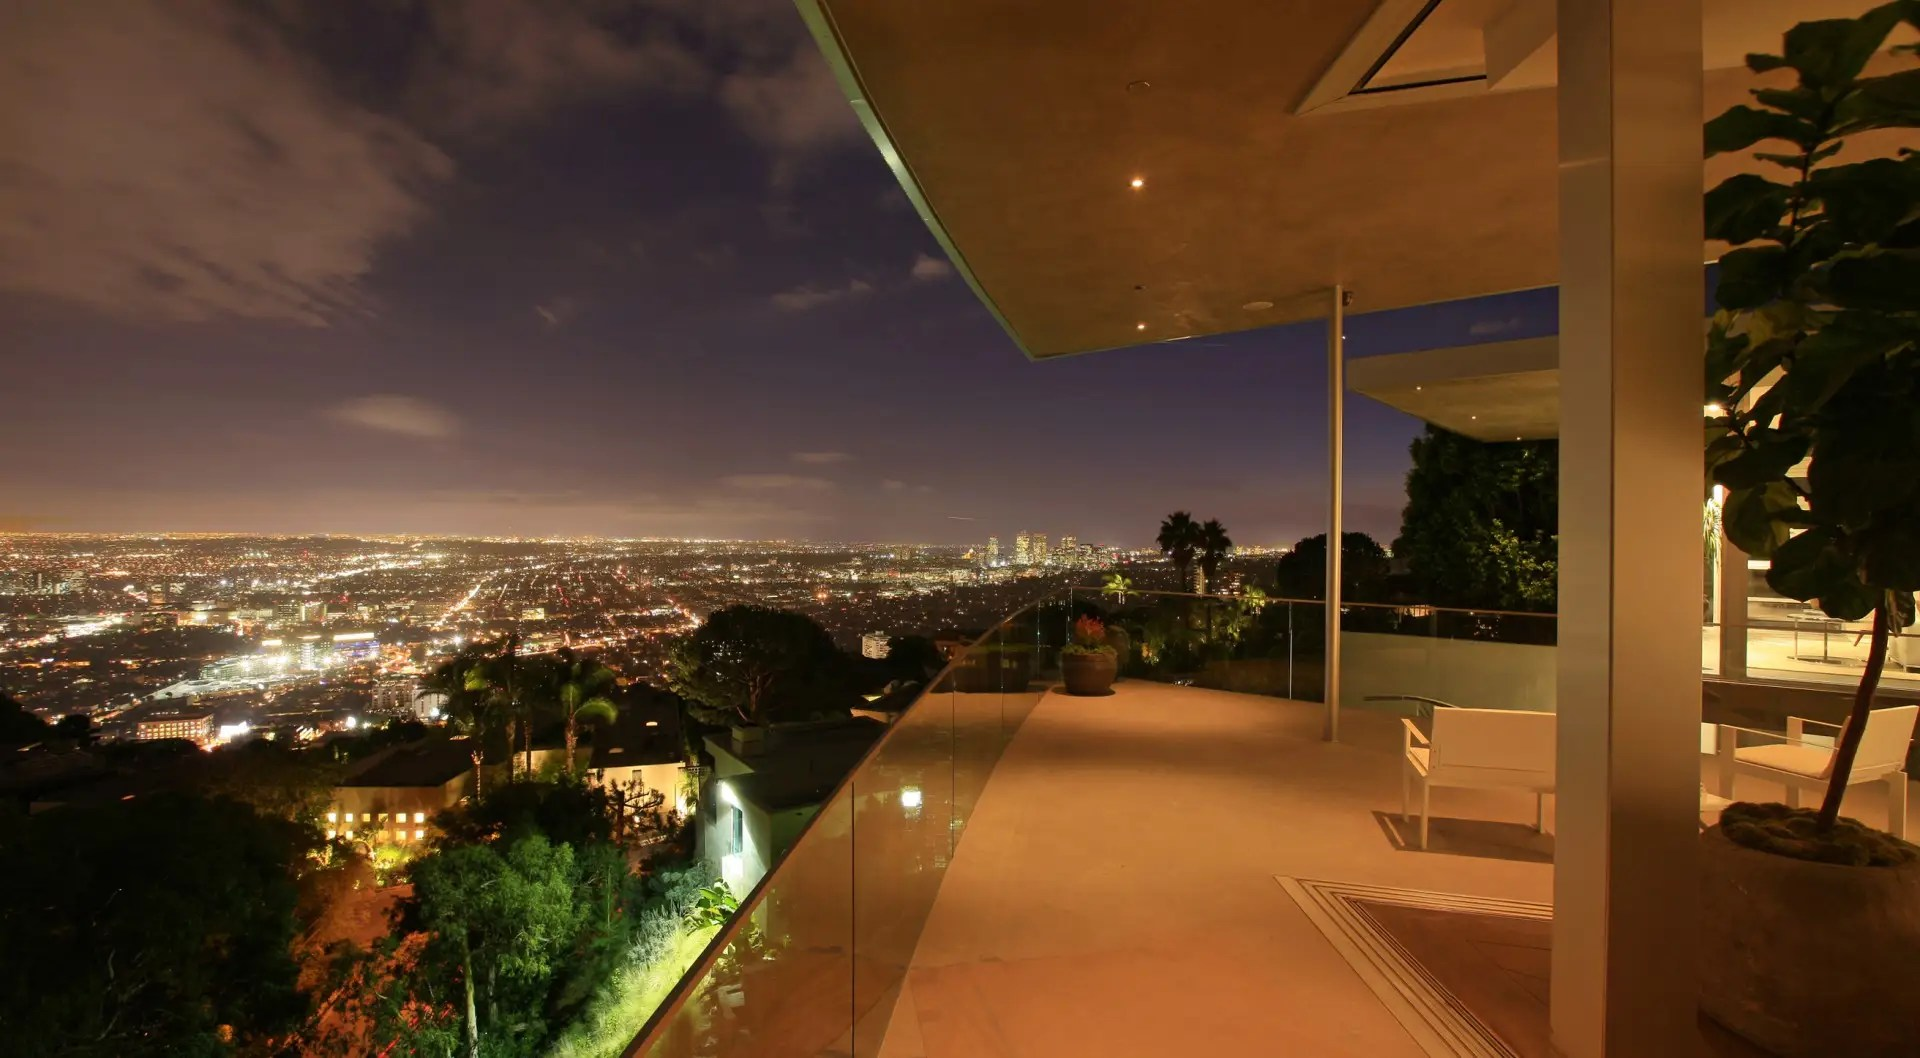 It offers sprawling views of the surrounding Hollywood Hills.